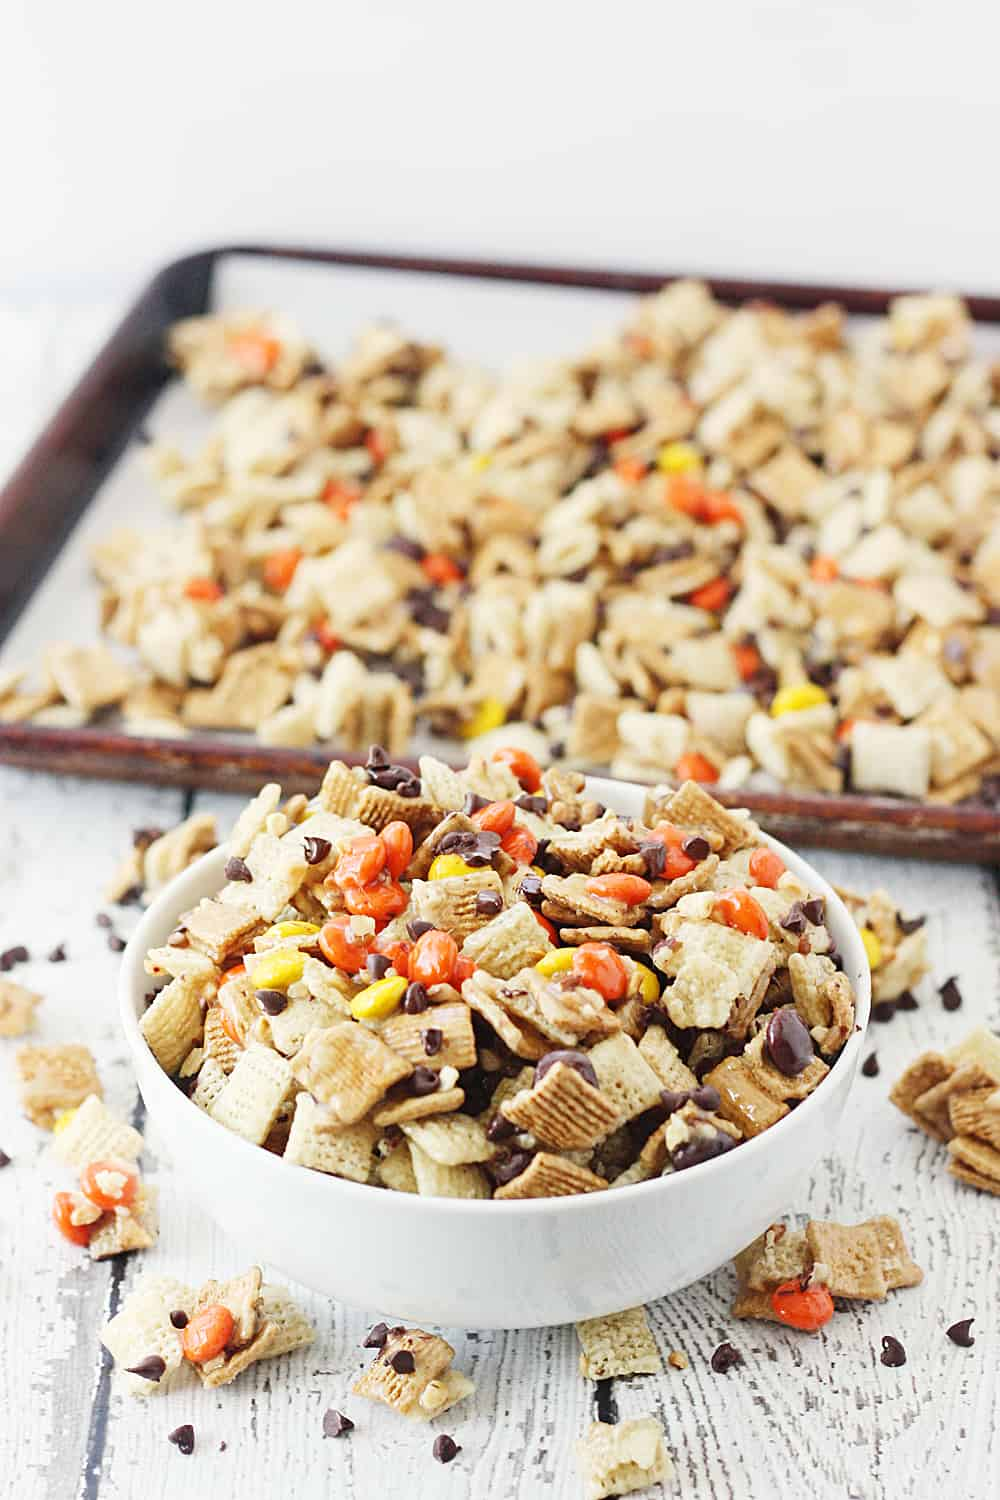 Easy Harvest Chex Mix - Getting your harvest Chex mix fix is easier than you think. Thanks to this easy recipe, that sweet, peanut-buttery fall Chex mix is only a few minutes away! #chex #chexmix #harvestchexmix #fallchexmix #peanutbutter #easyrecipe #easydessert #dessert #sweet #halfscratched #CreatewithKaro #KaroSyrup #Recipeideas #ad